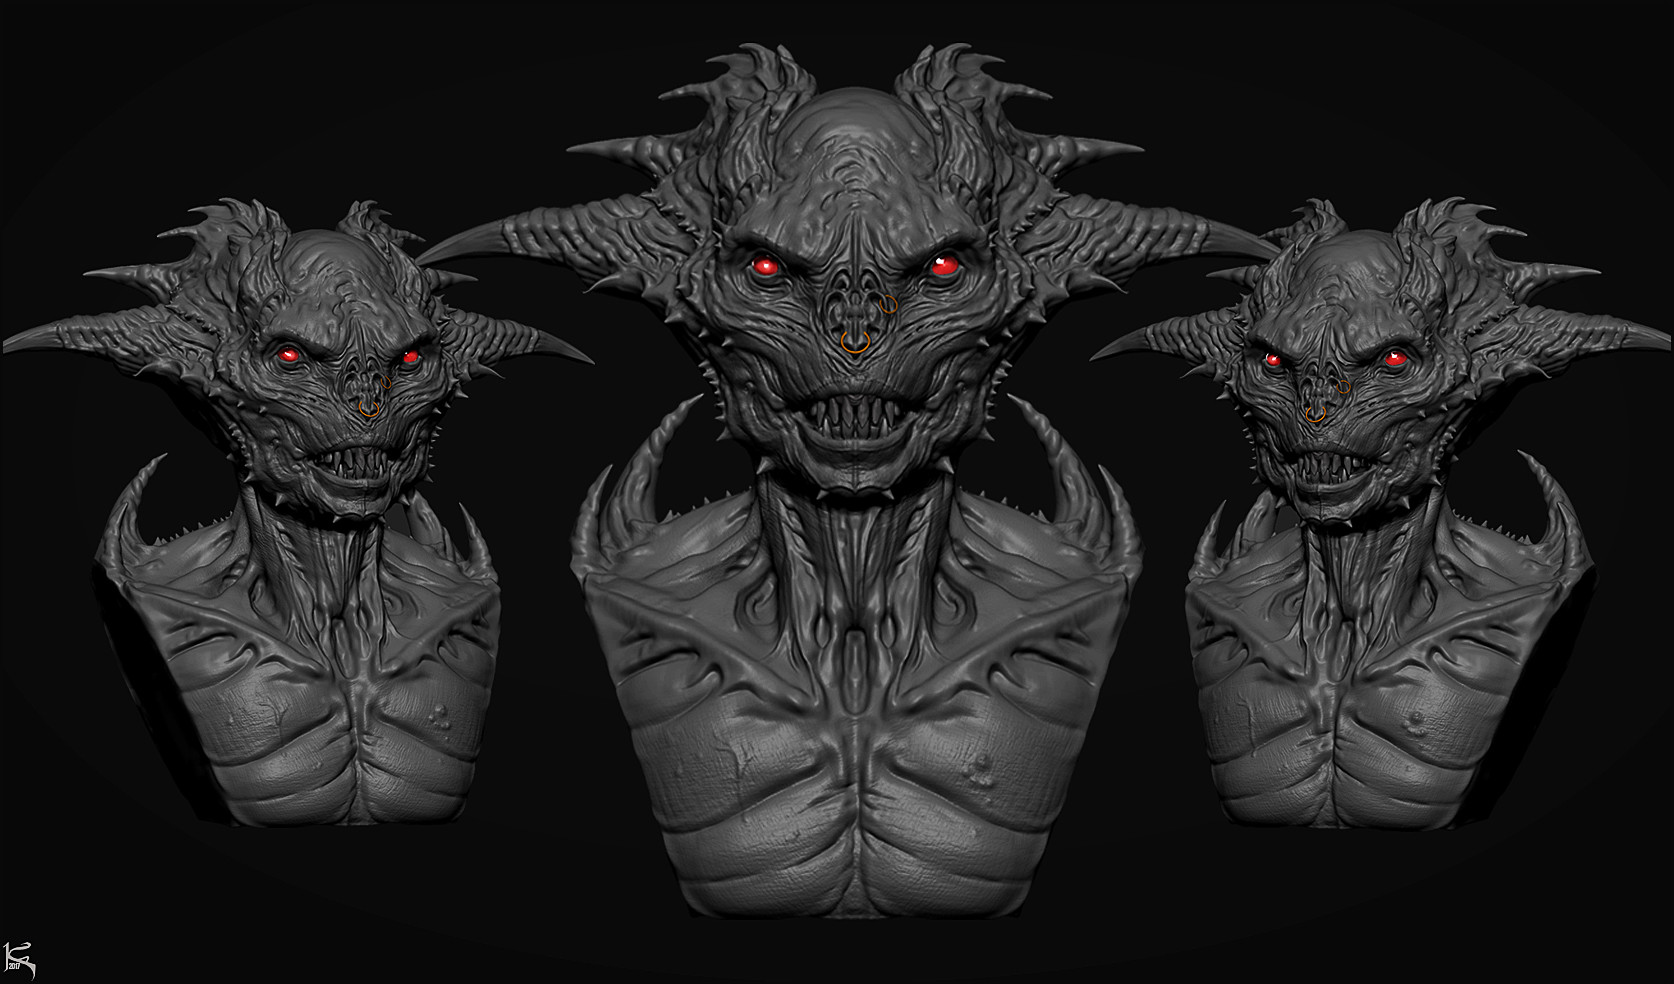 kenny-carmody-creature42-zbrush-screengrab-bw.jpg